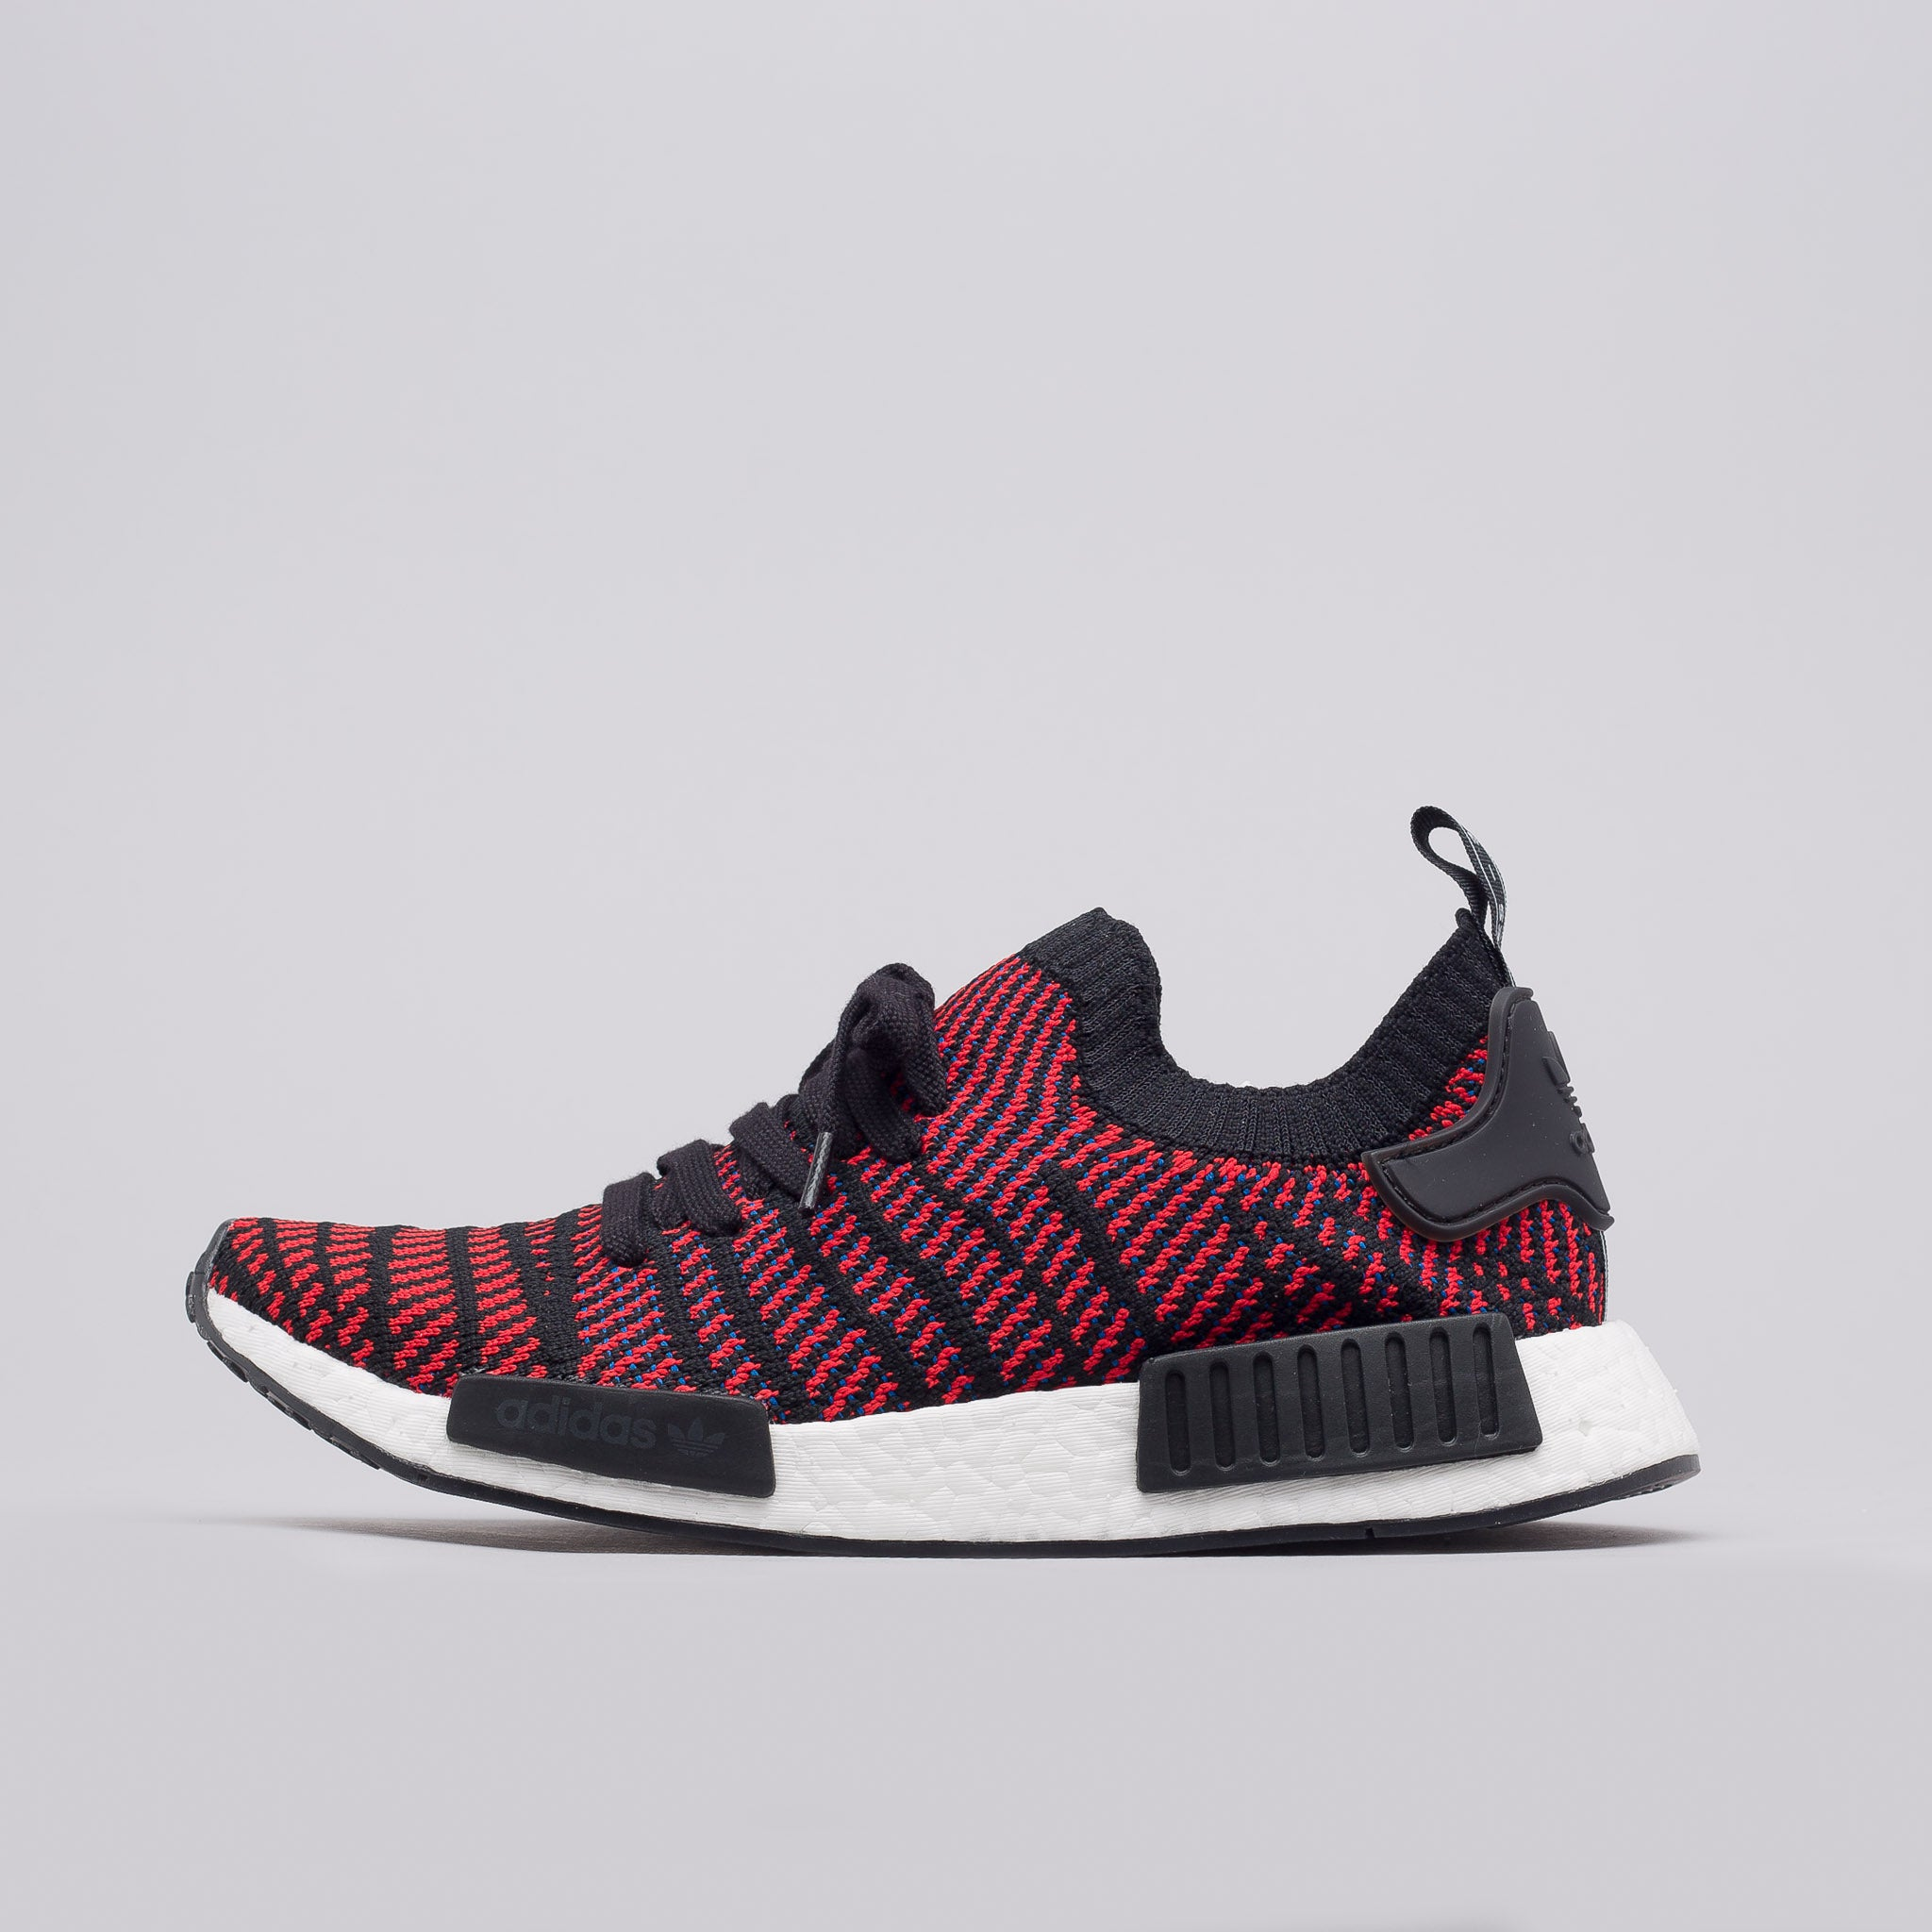 Adidas NMD R1 Runner Womens Salmon S76006 Best Final Version